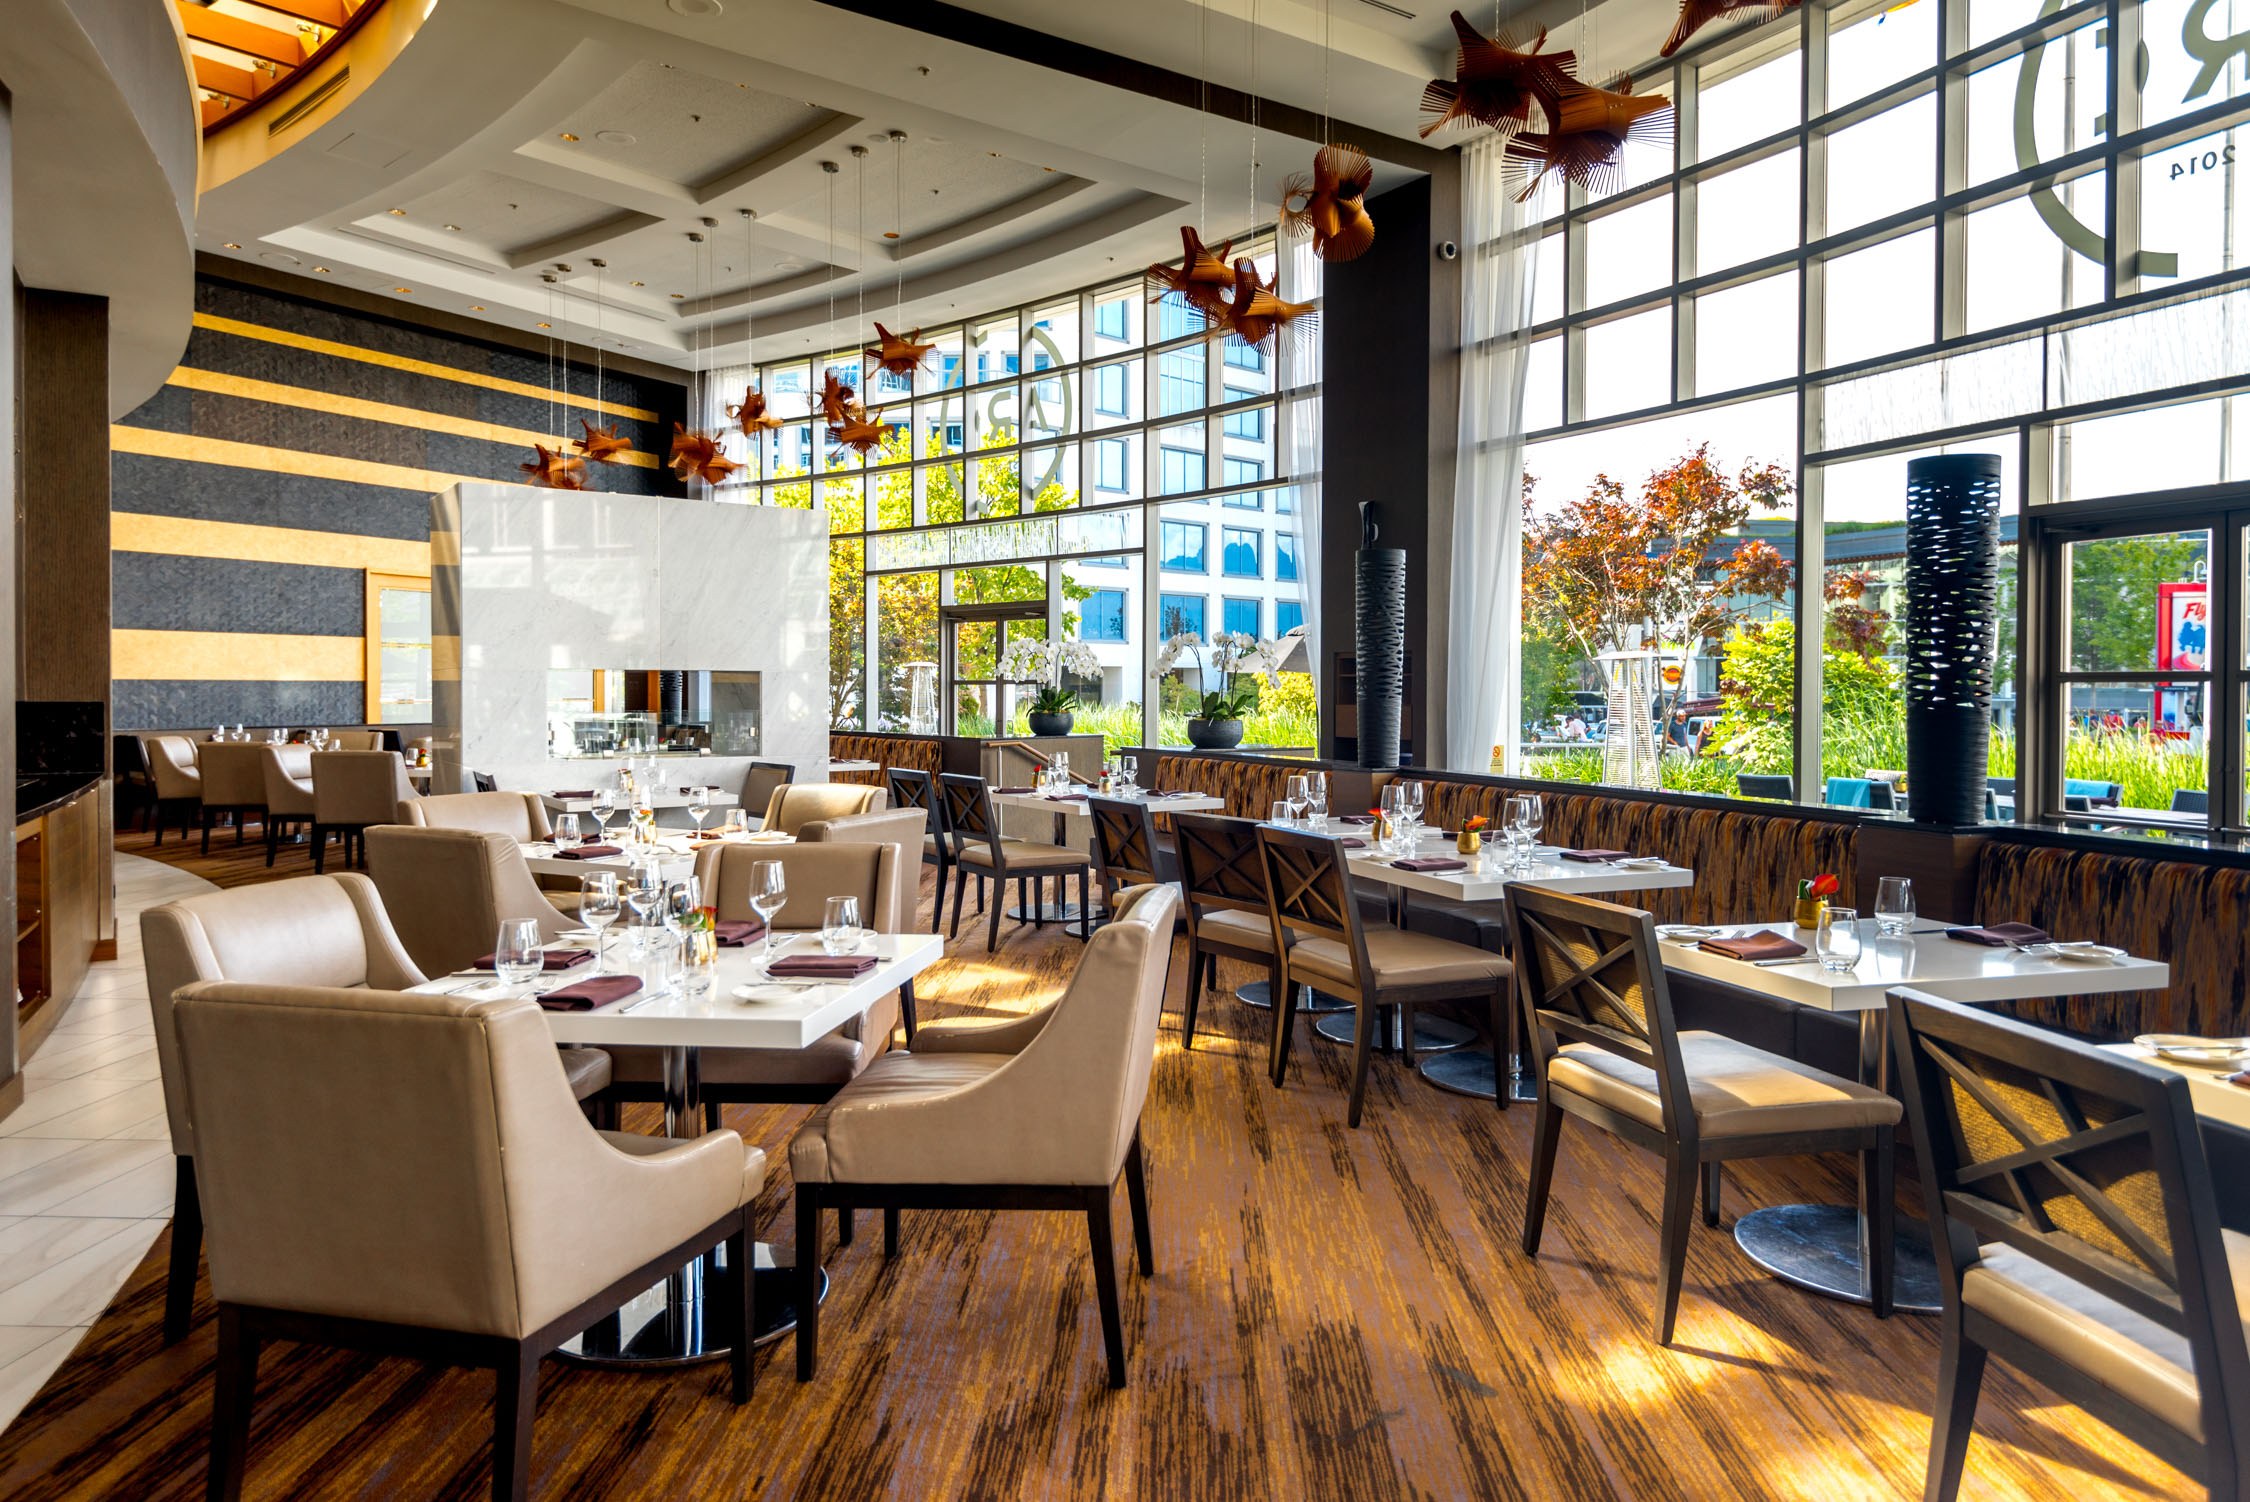 Inside ARC Restaurant at the Fairmont Waterfront